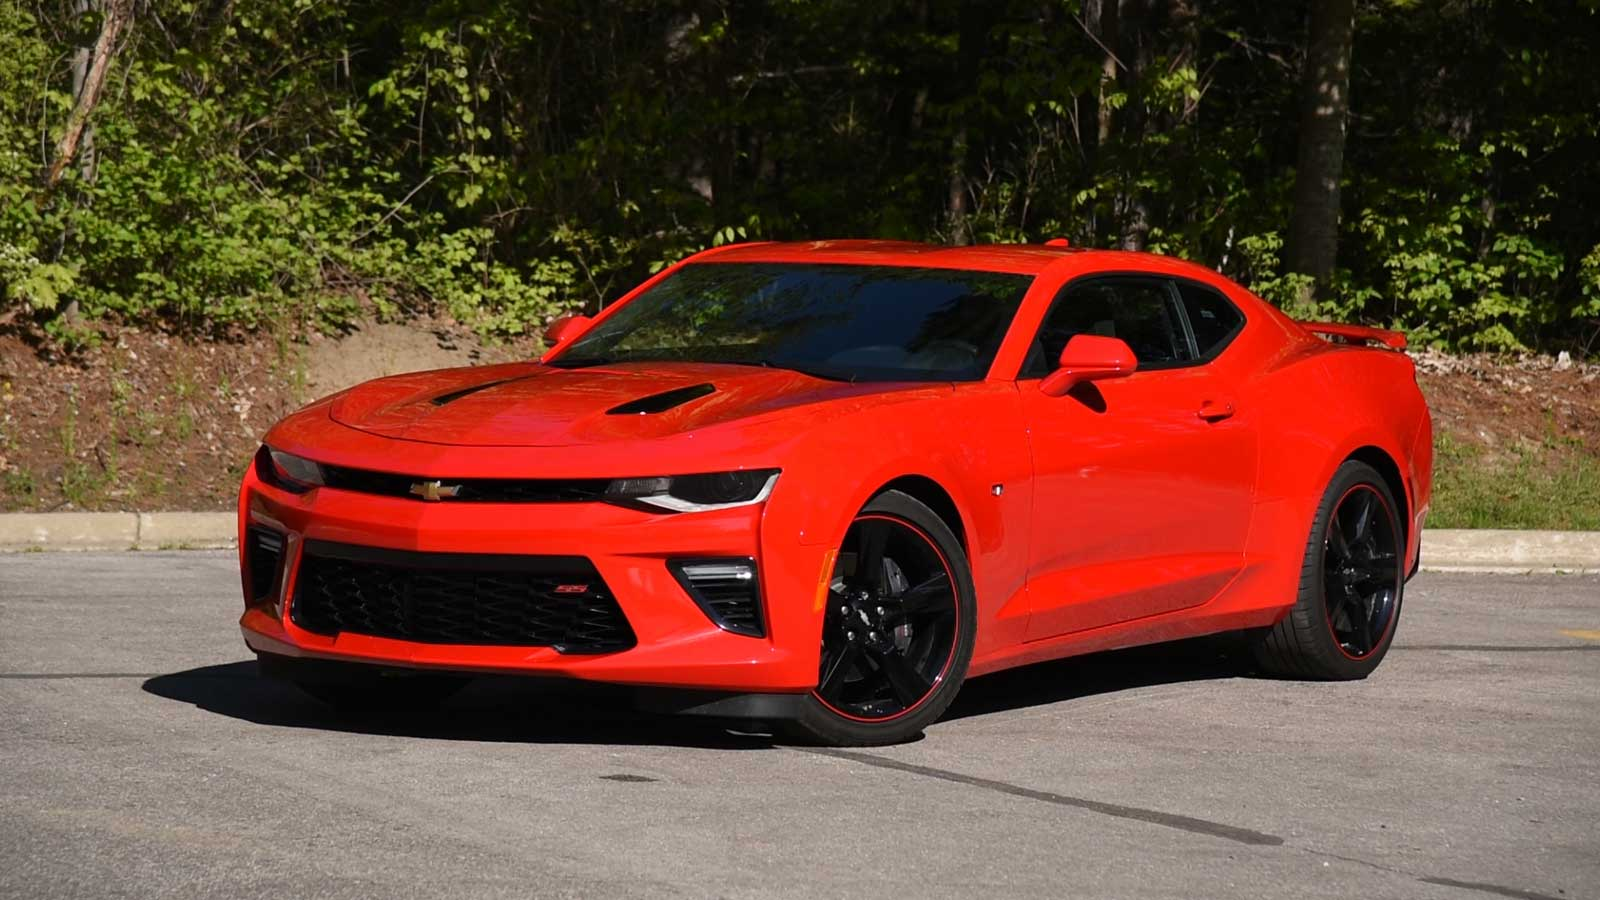 2016 Chevrolet Camaro Ss Review Curbed With Craig Cole